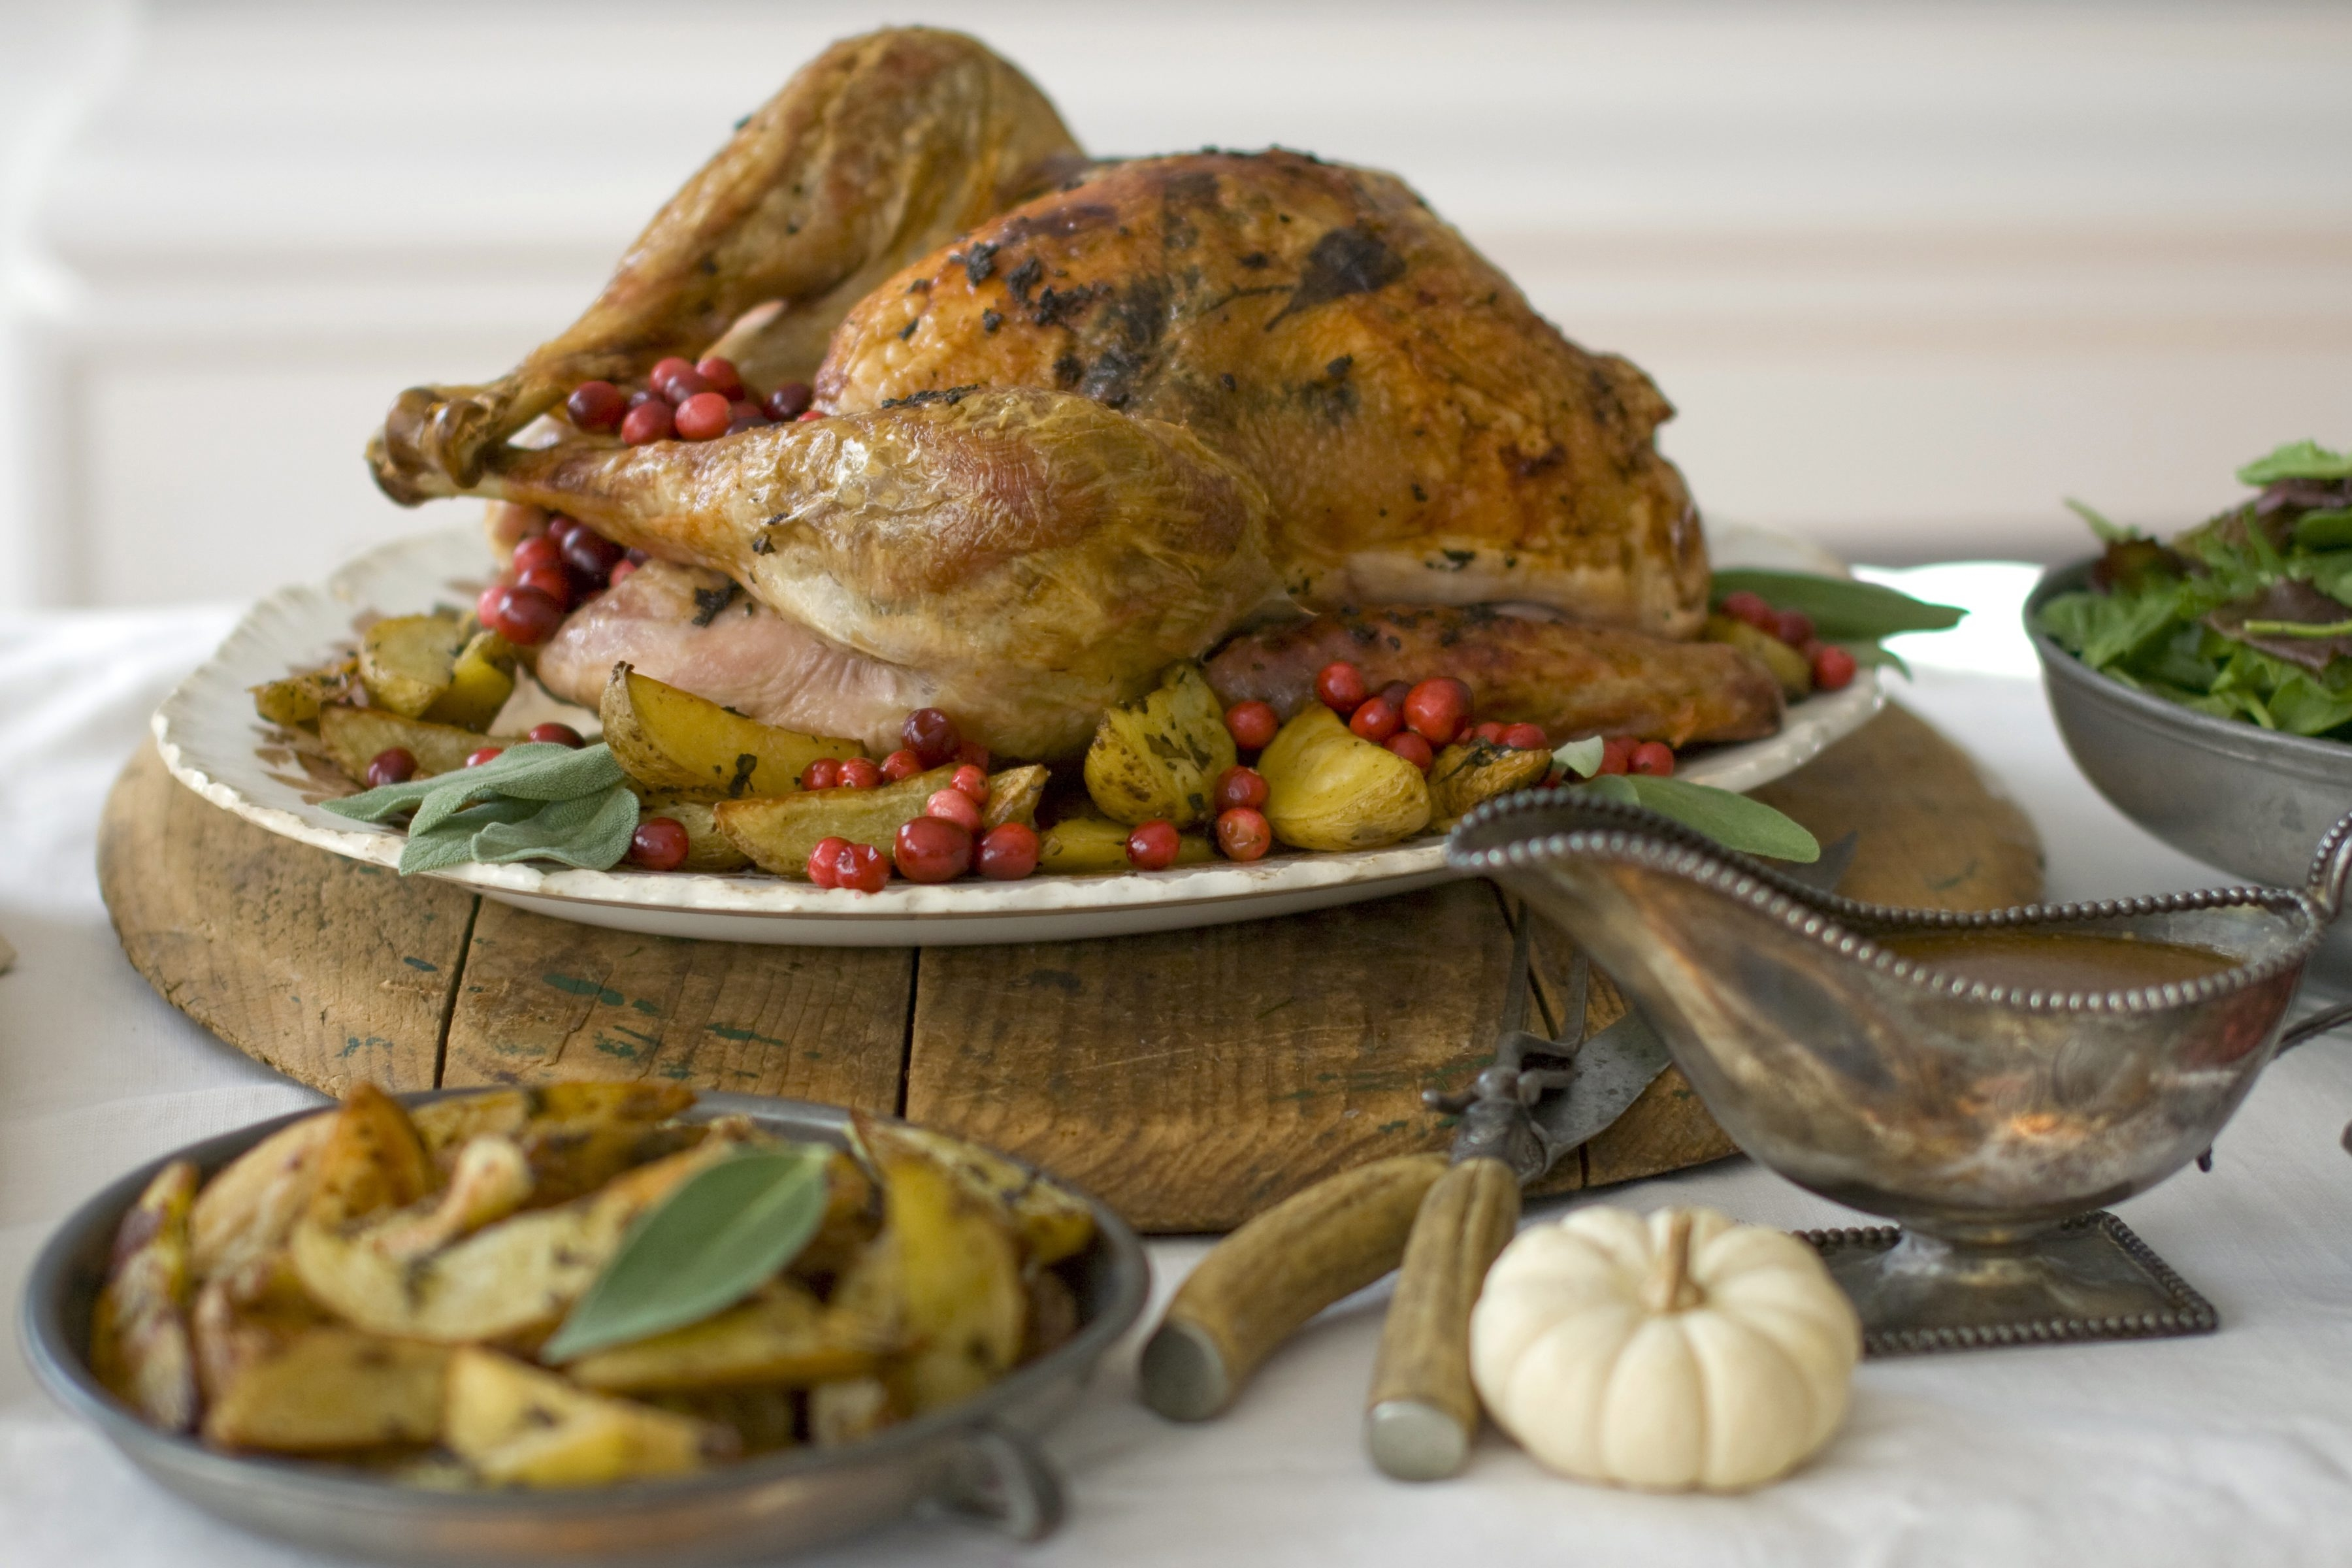 Eating in the afternoon and limiting alcohol are two things you can do to reduce heartburn after Thanksgiving dinner.